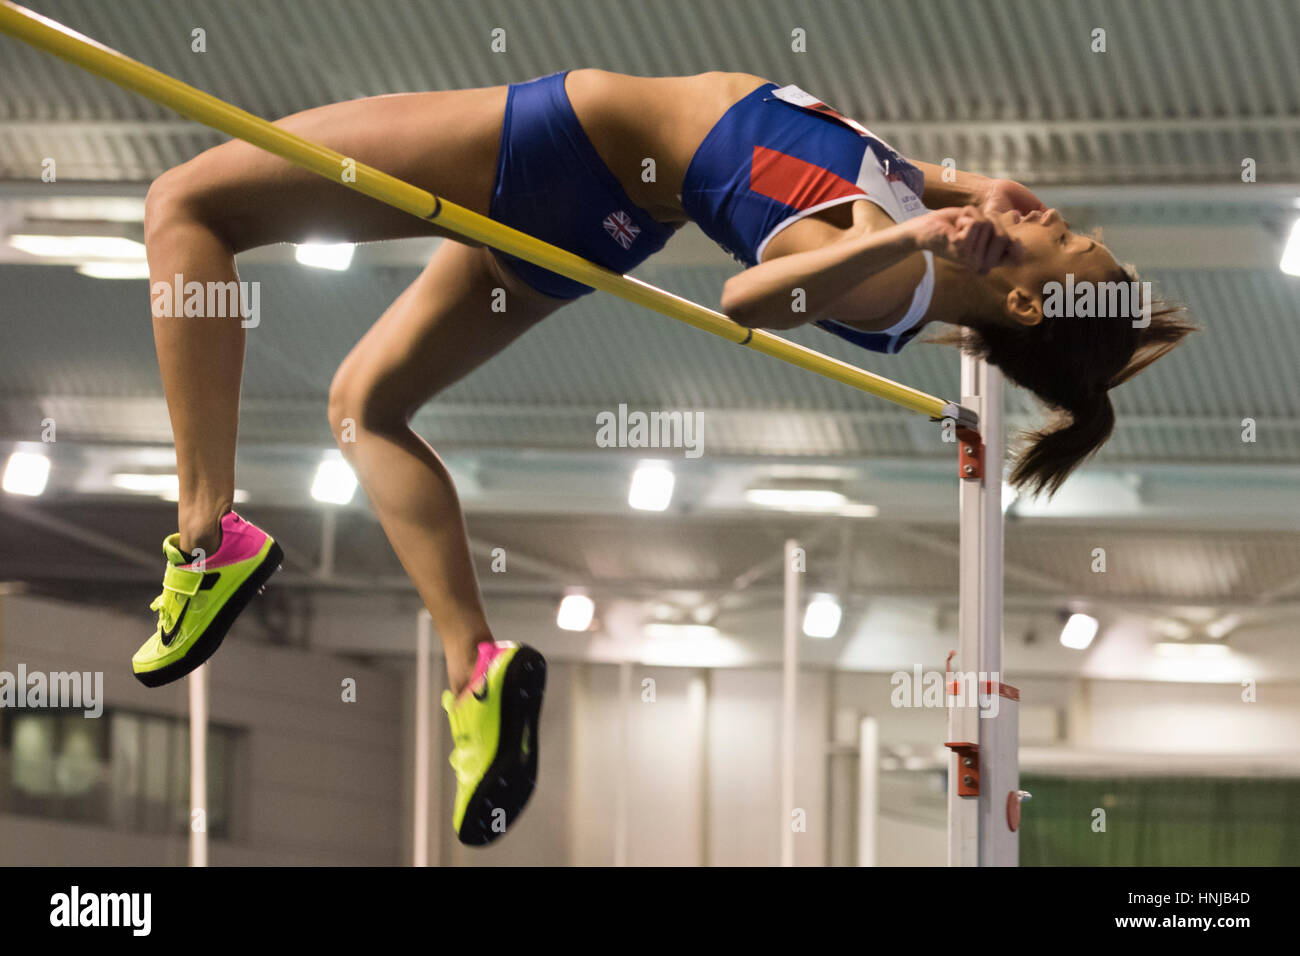 Morgan Lake clears the high jump bar during the British Athletics Indoor Team Trials at the English Institute of - Stock Image